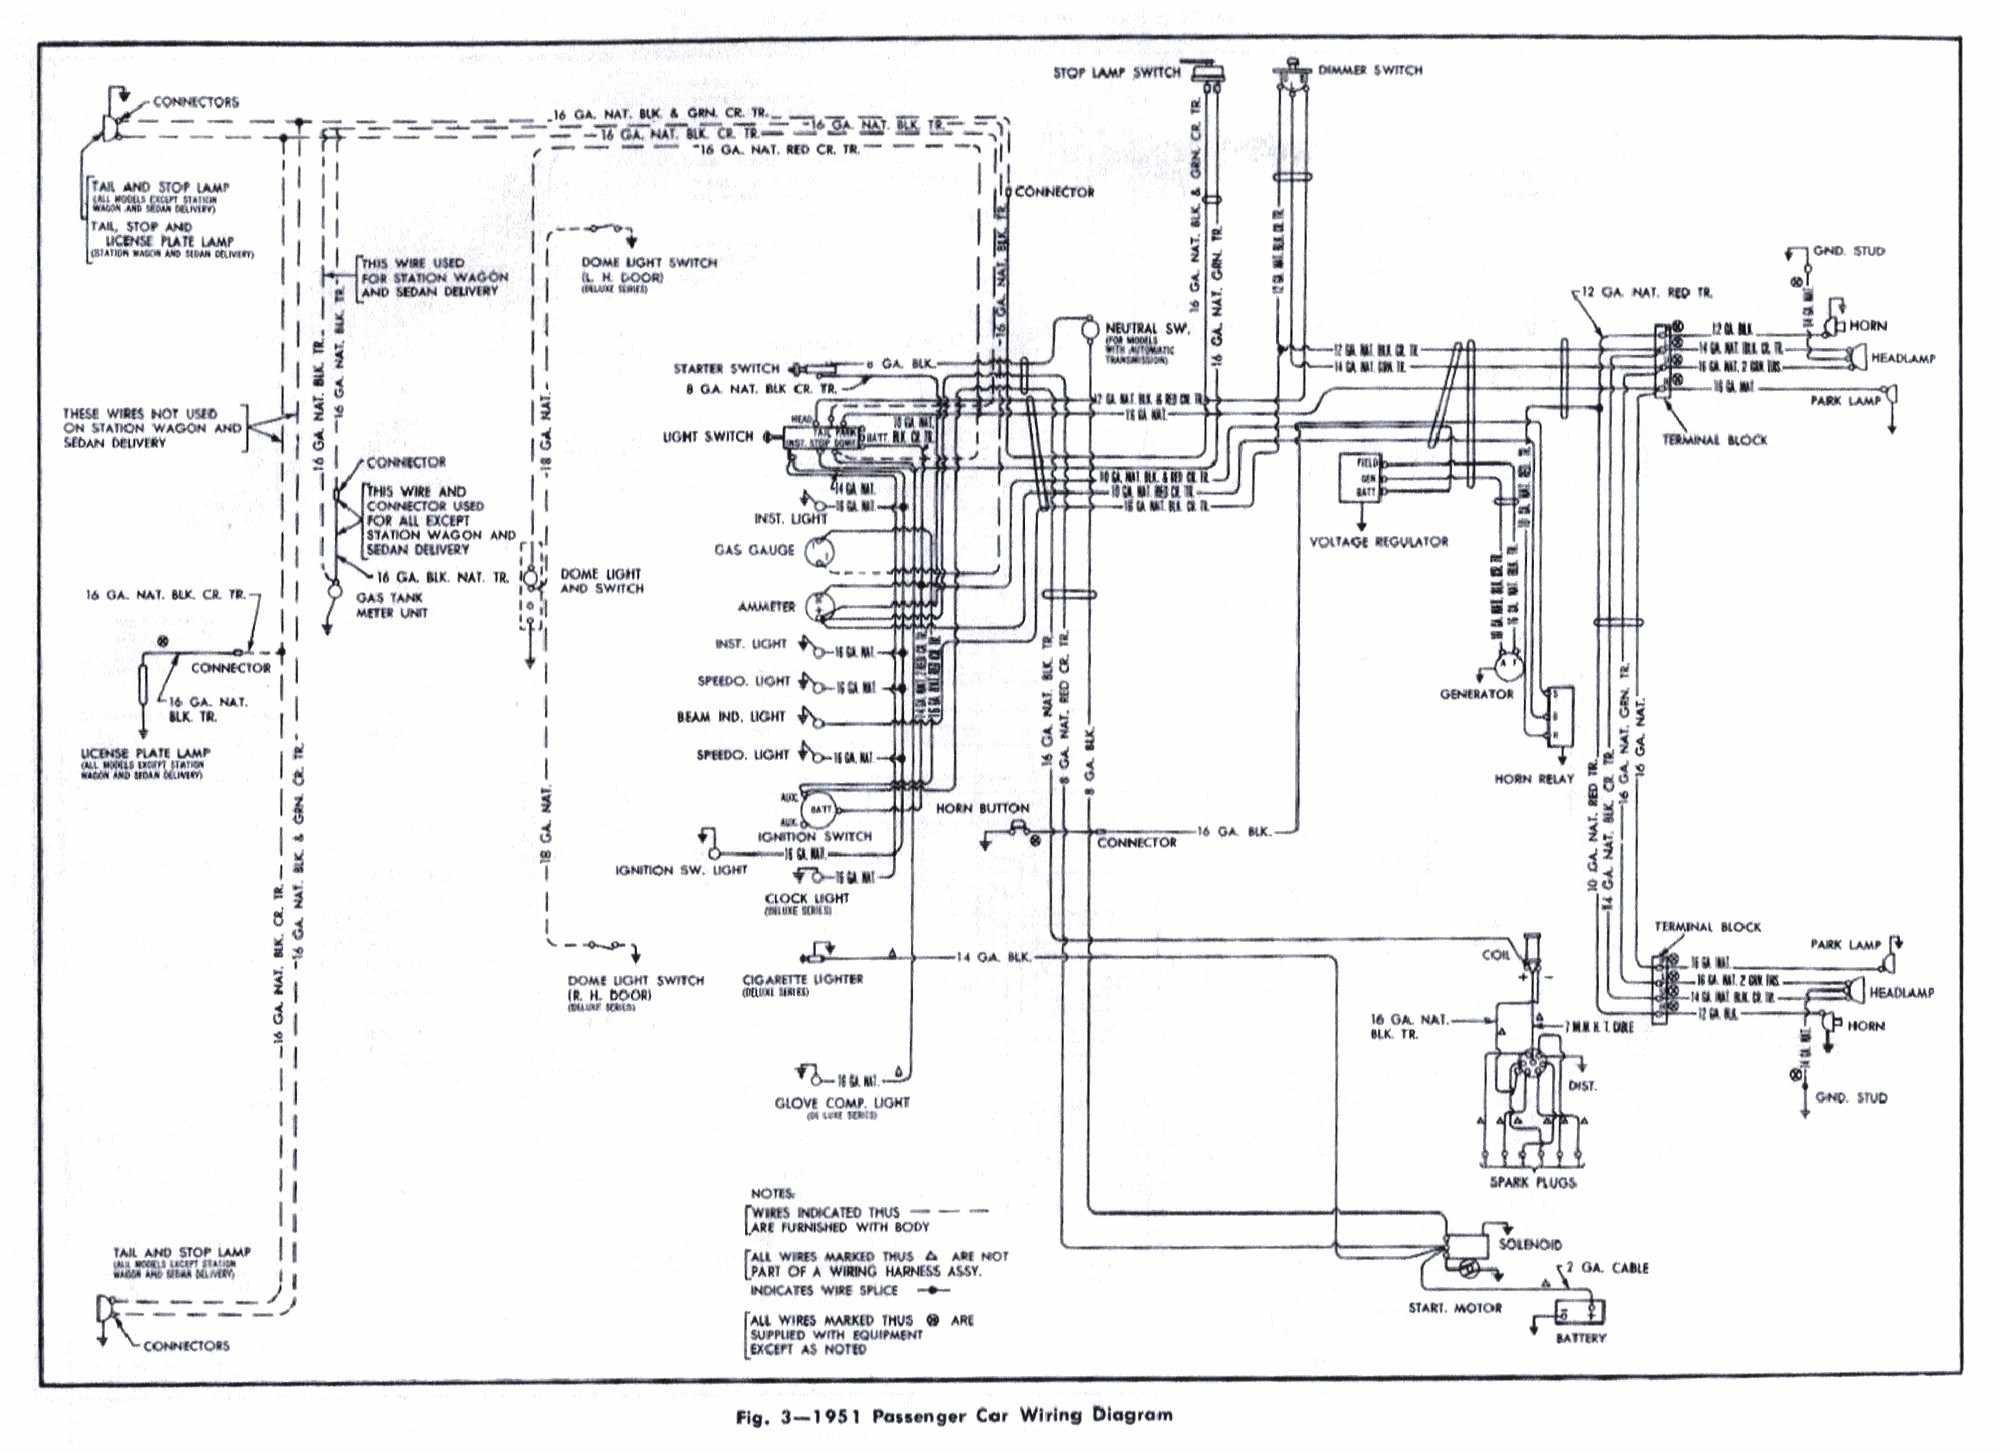 87 corvette dashboard wiring diagram free download residential 1982 corvette  ecm wiring diagram free download wiring